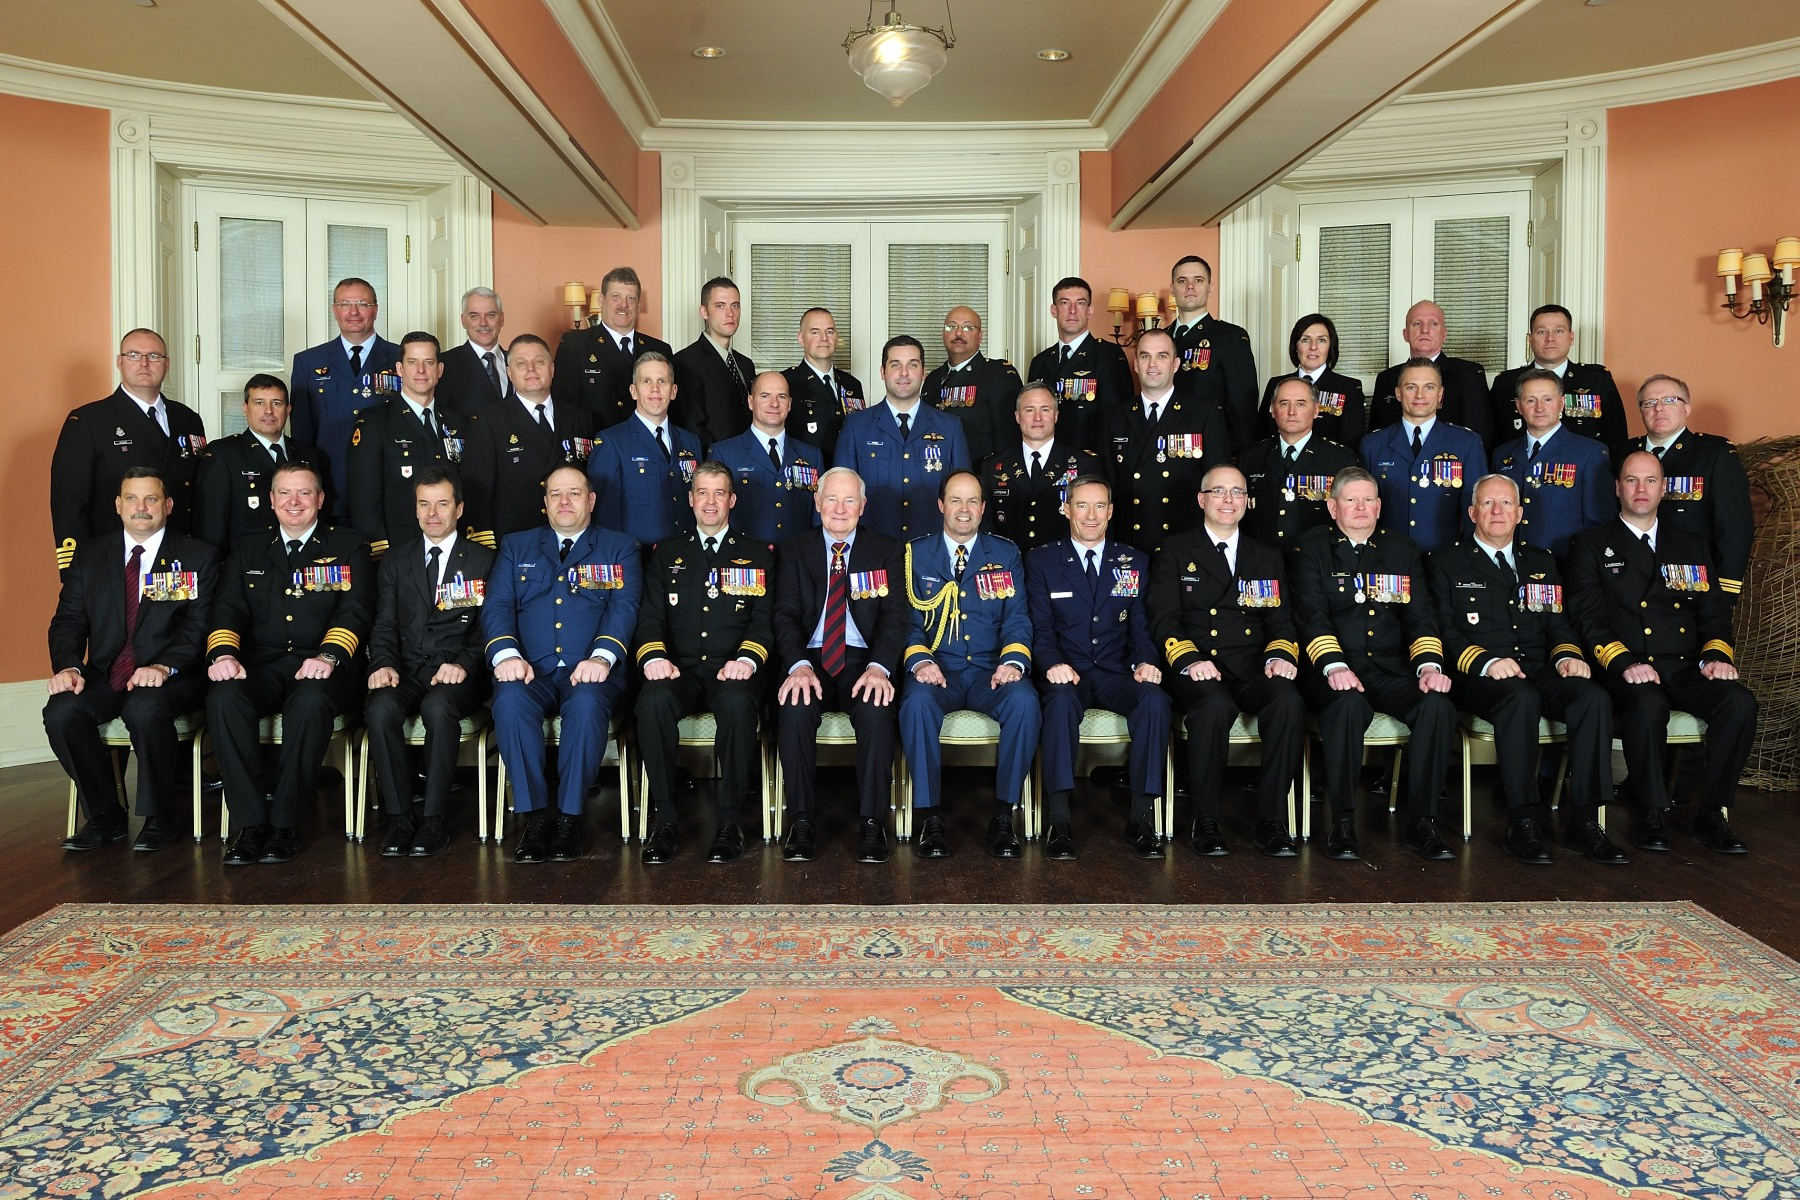 The Governor General and the Chief of the Defence Staff are pictured with the 34 recipients who were presented with Meritorious Service Decorations (Military Division) on February 18, 2014.